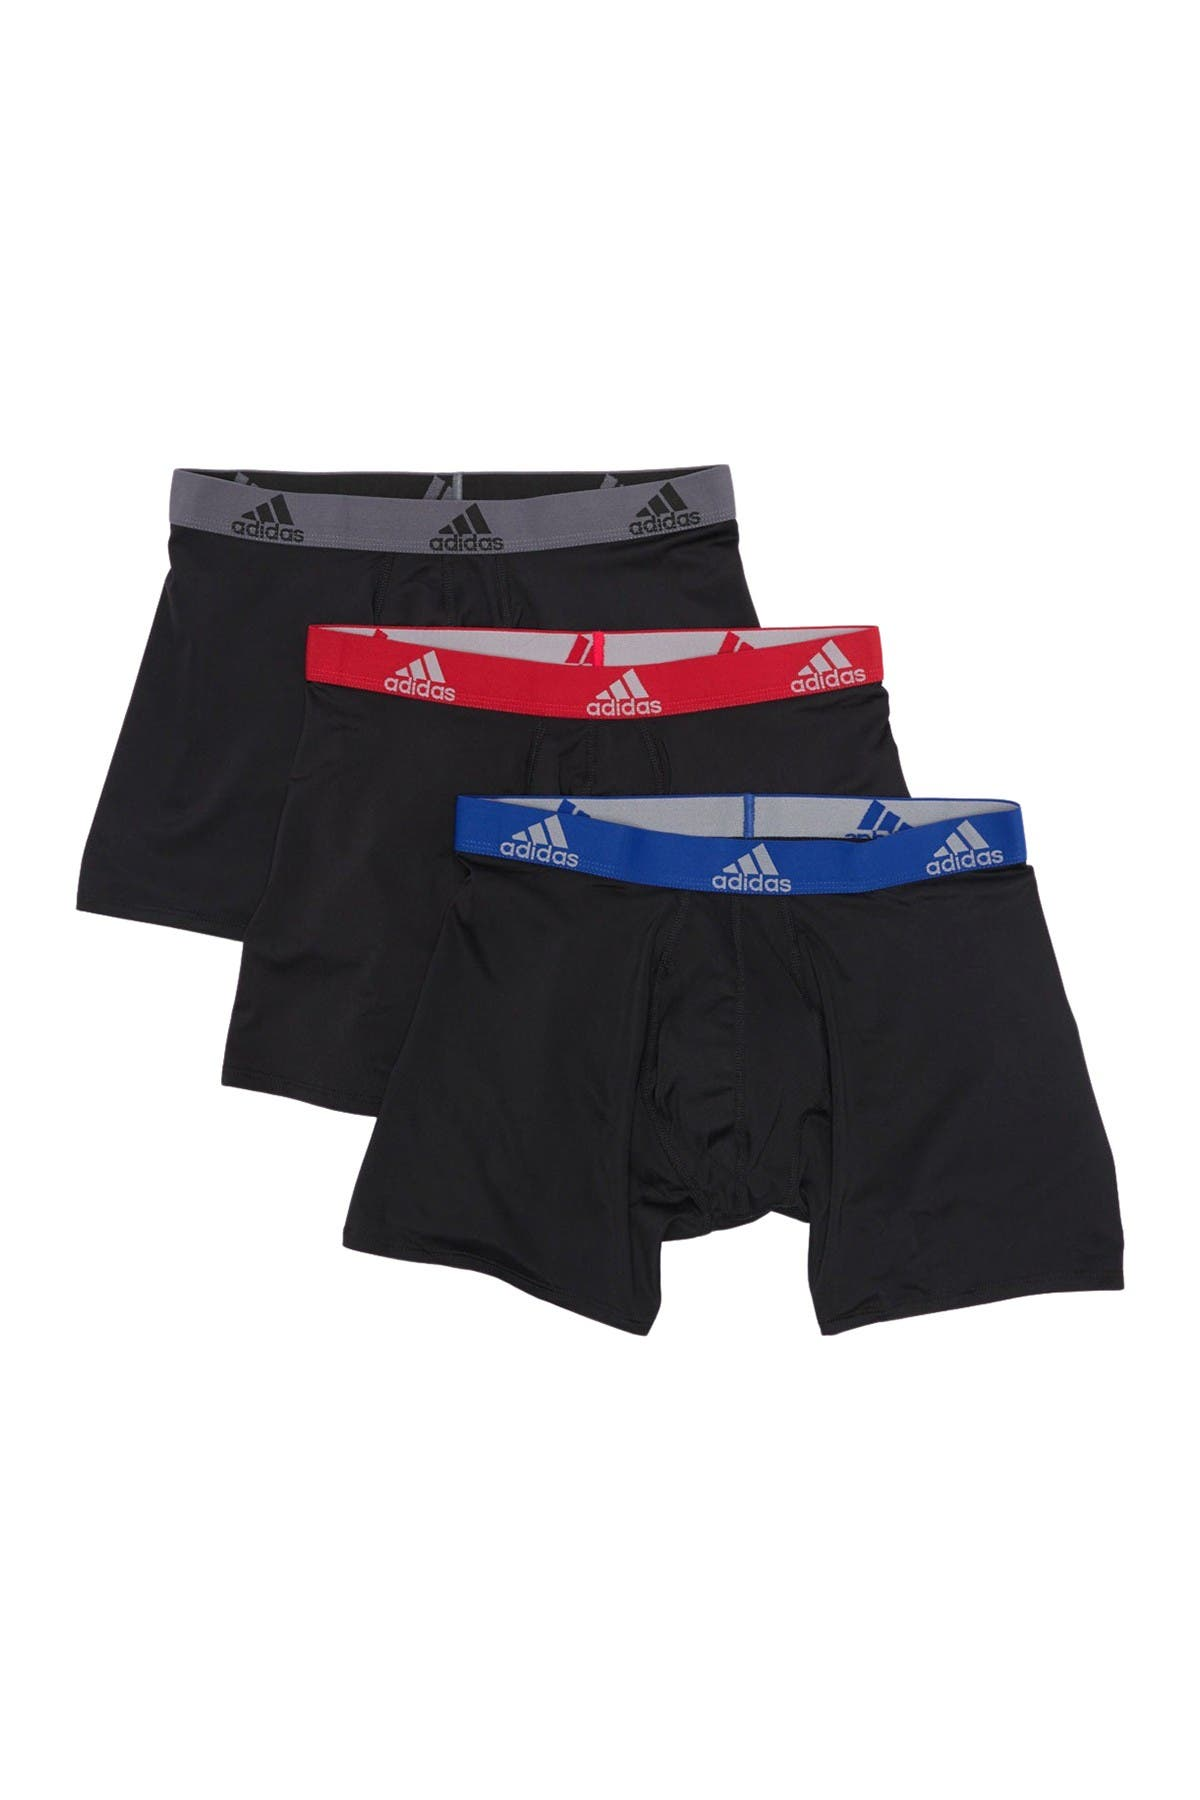 Image of adidas Performance Boxers - 3 Pack